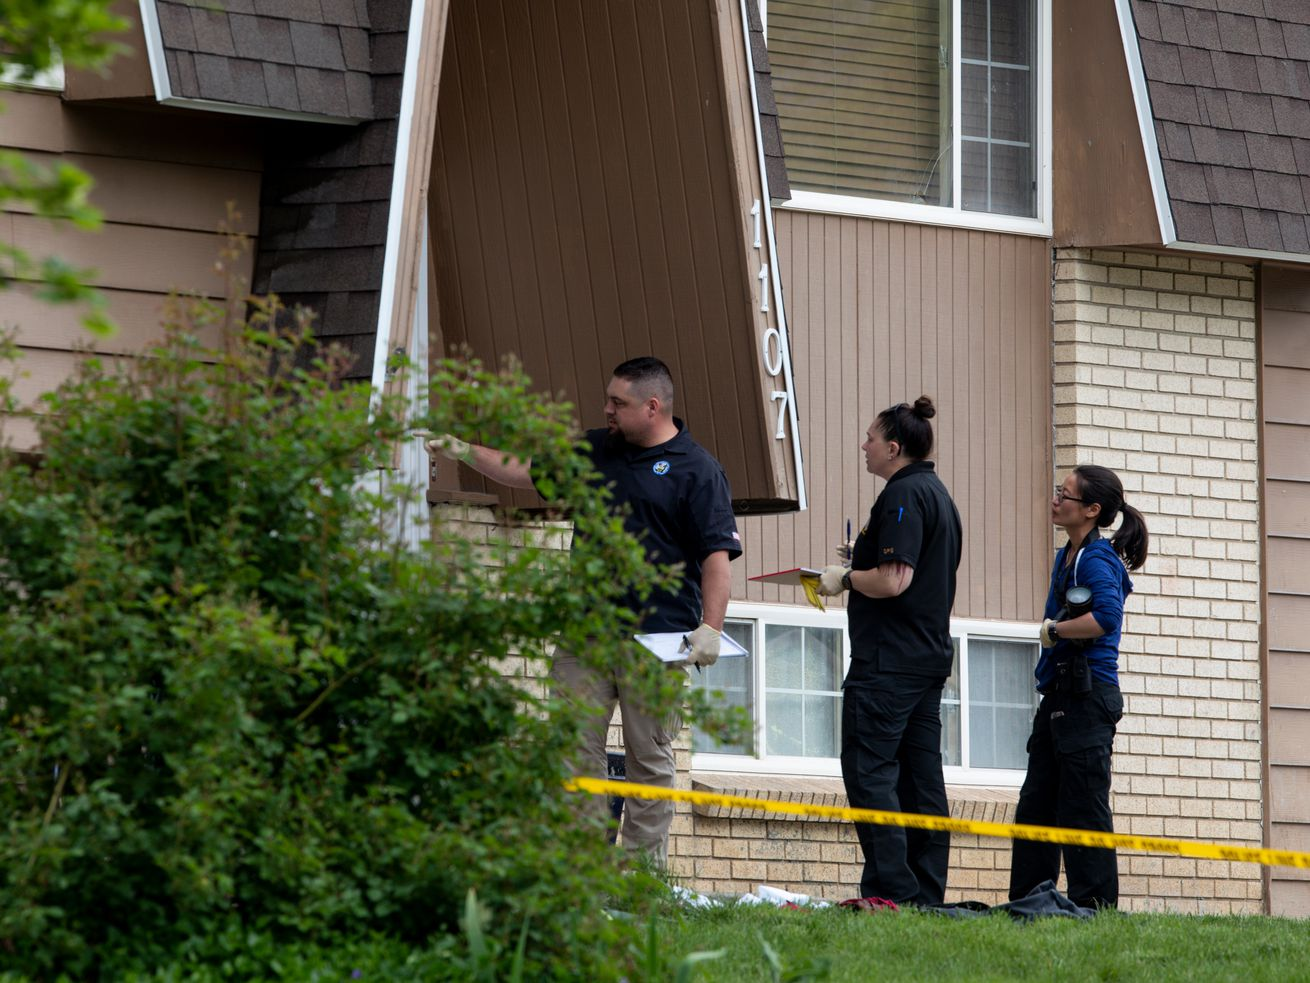 Police investigate a scene where a 17-year-old was killed after being shot outside his home near 1100 East and Saphire Drive (9600 South) in Sandy on Friday, May 22, 2020.